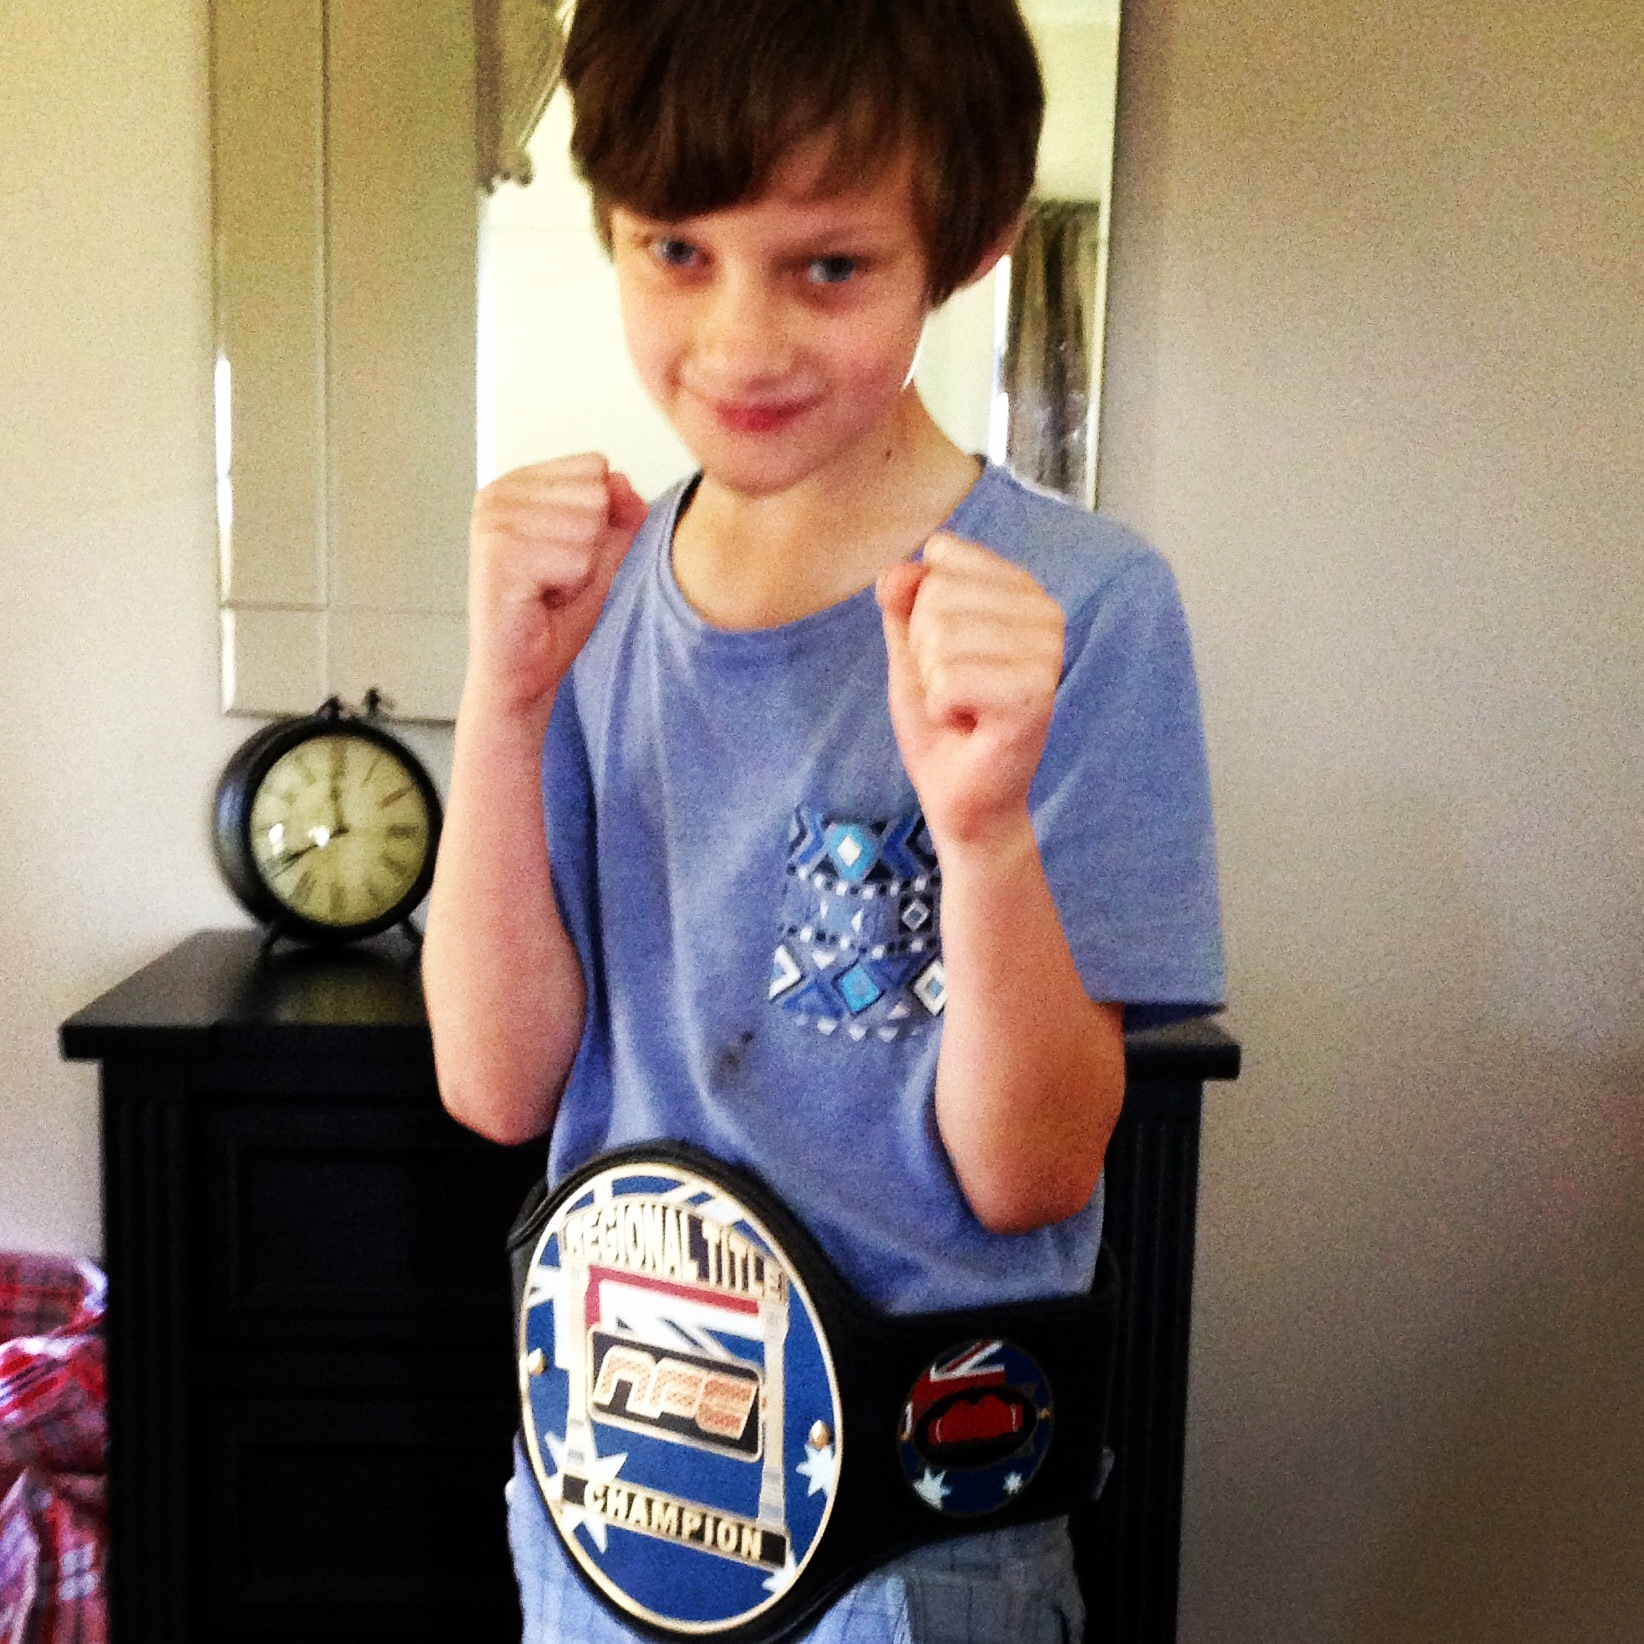 Lachlan the Champ